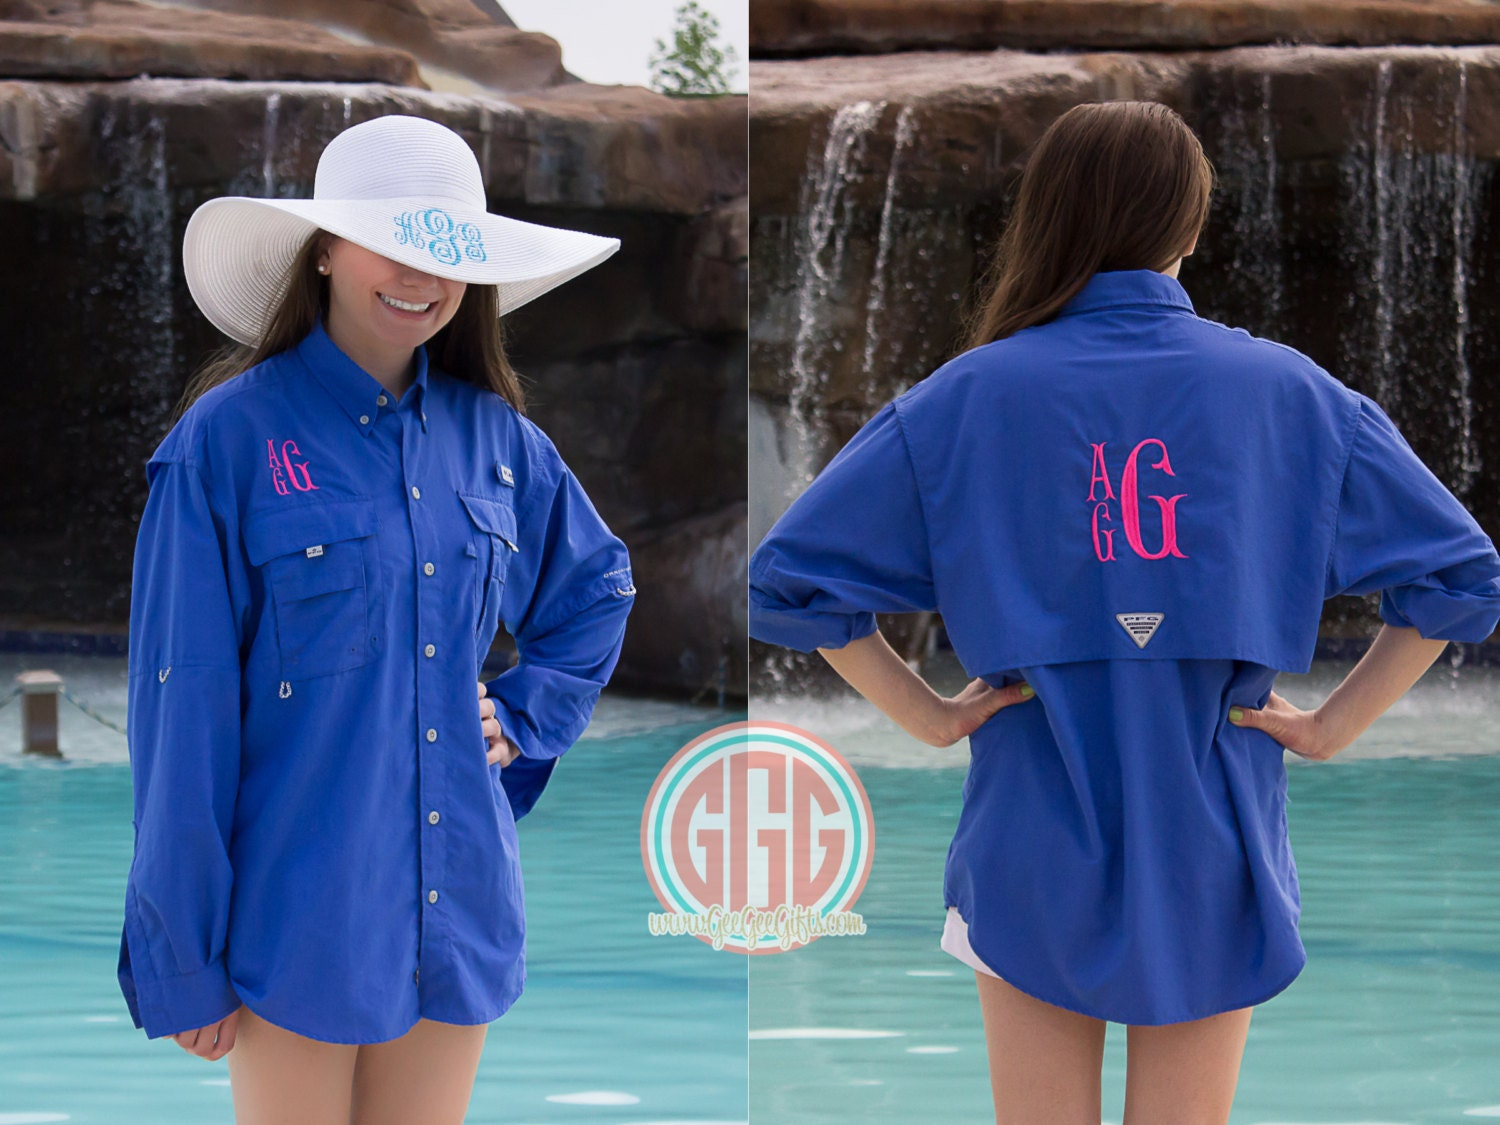 Columbia PFG Fishing Shirt Swim cover up long sleeve men's size, monogram Bridal Party Cover up, bathing suit swim cover up